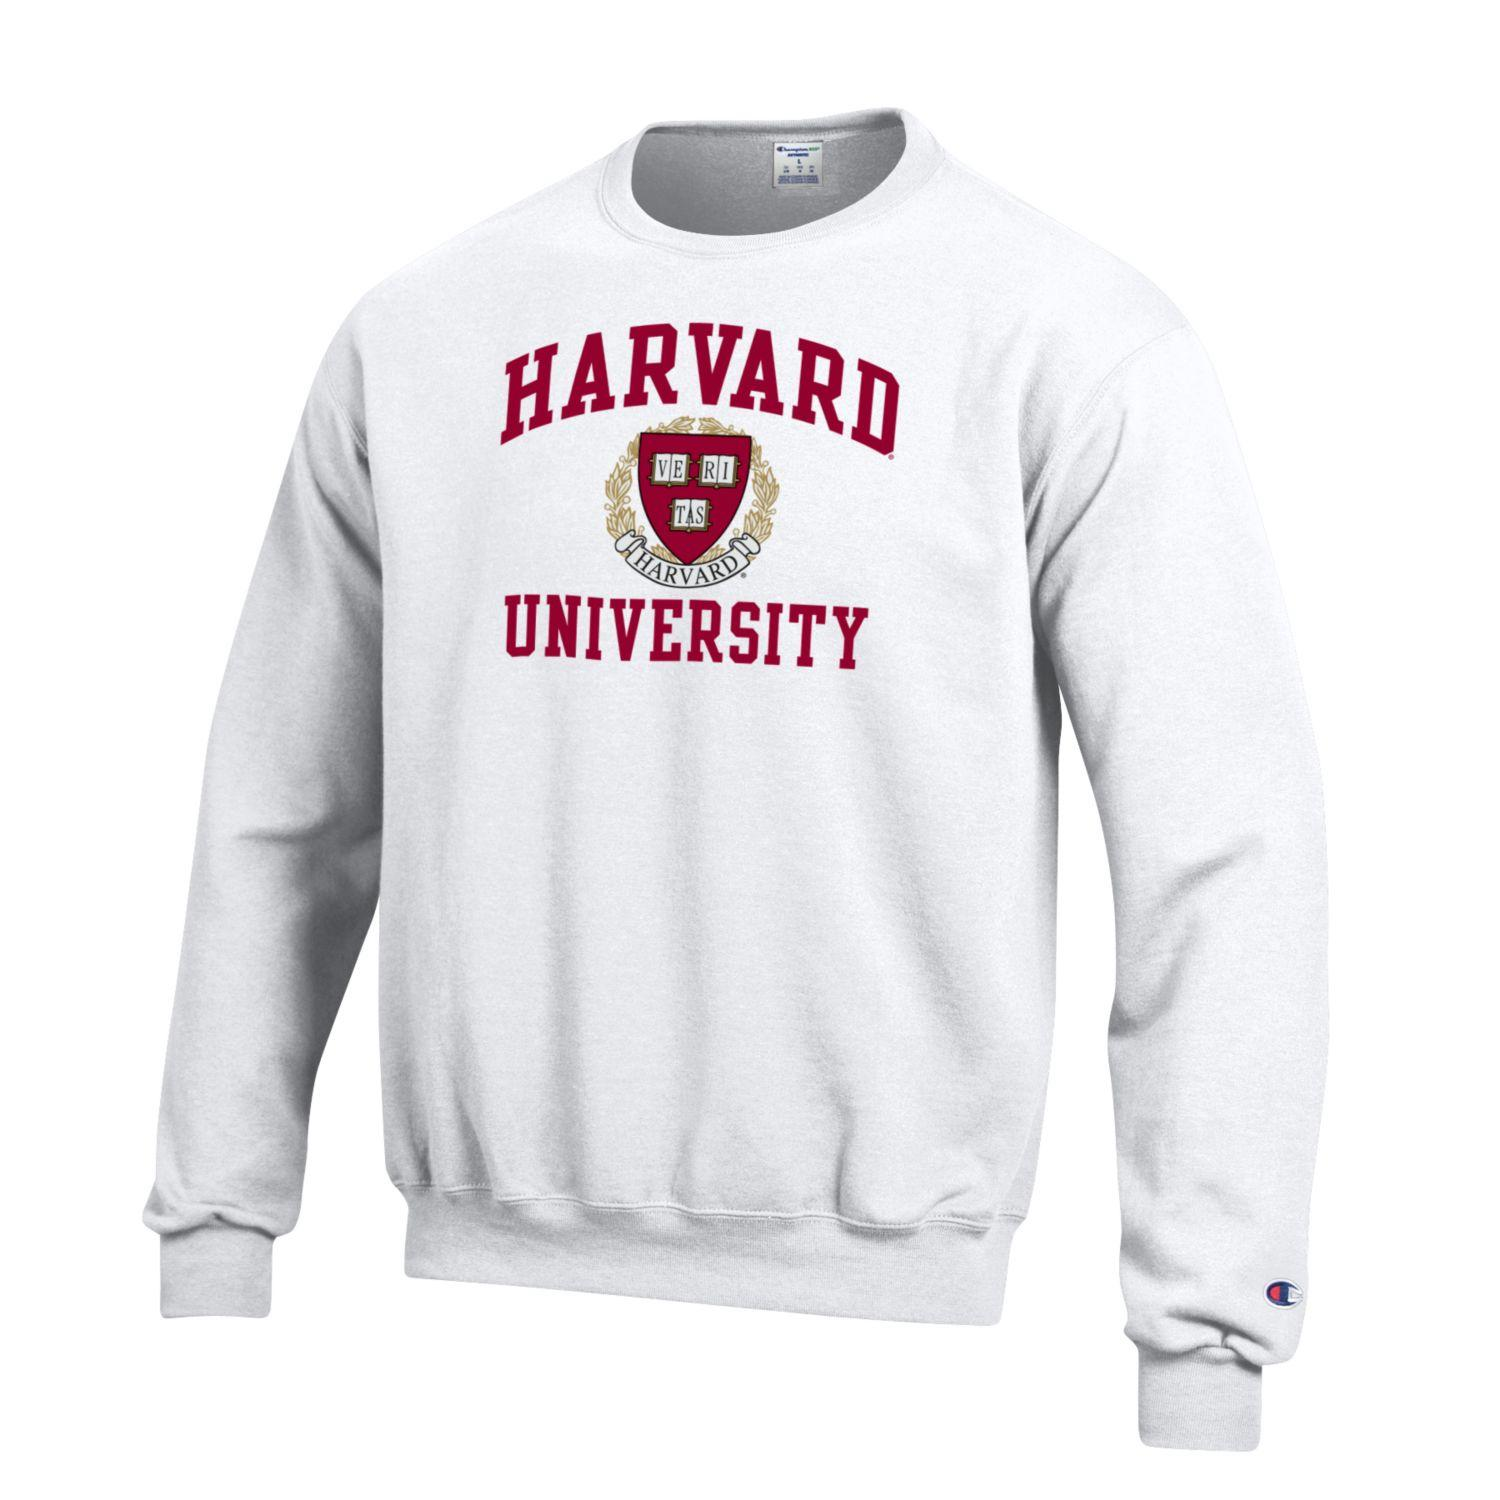 Champion Men's White Harvard Sweatshirt University L5R34Aj